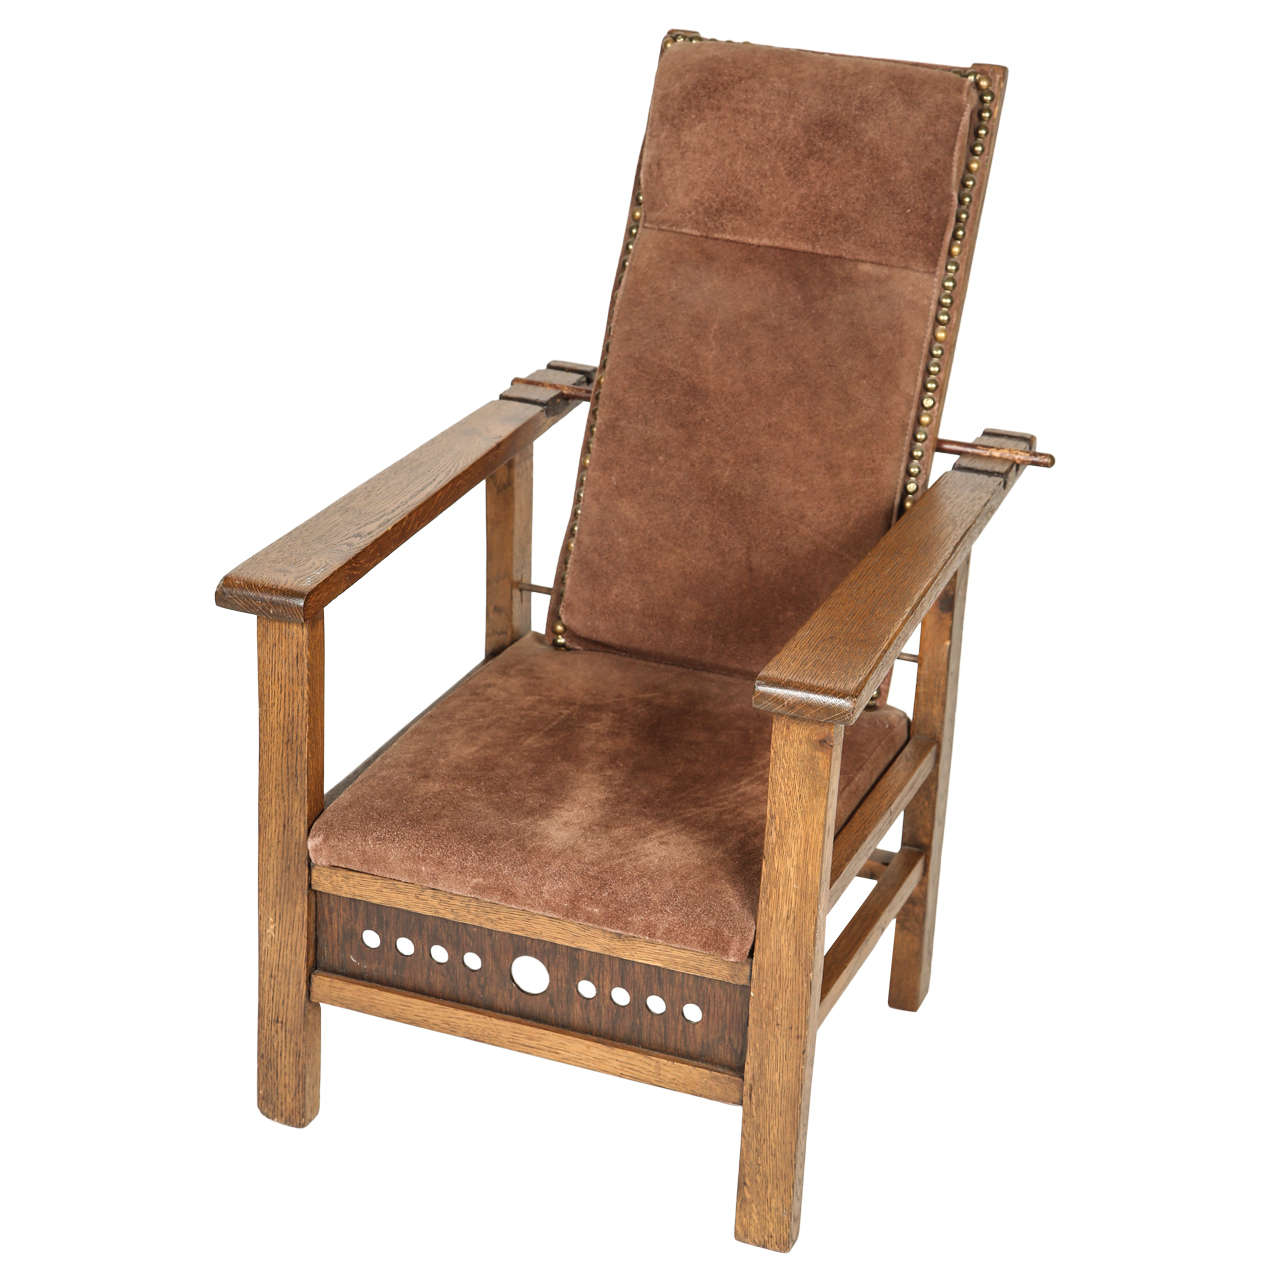 Morris Chairs Antique Oak Child 39s Morris Chair For Sale At 1stdibs